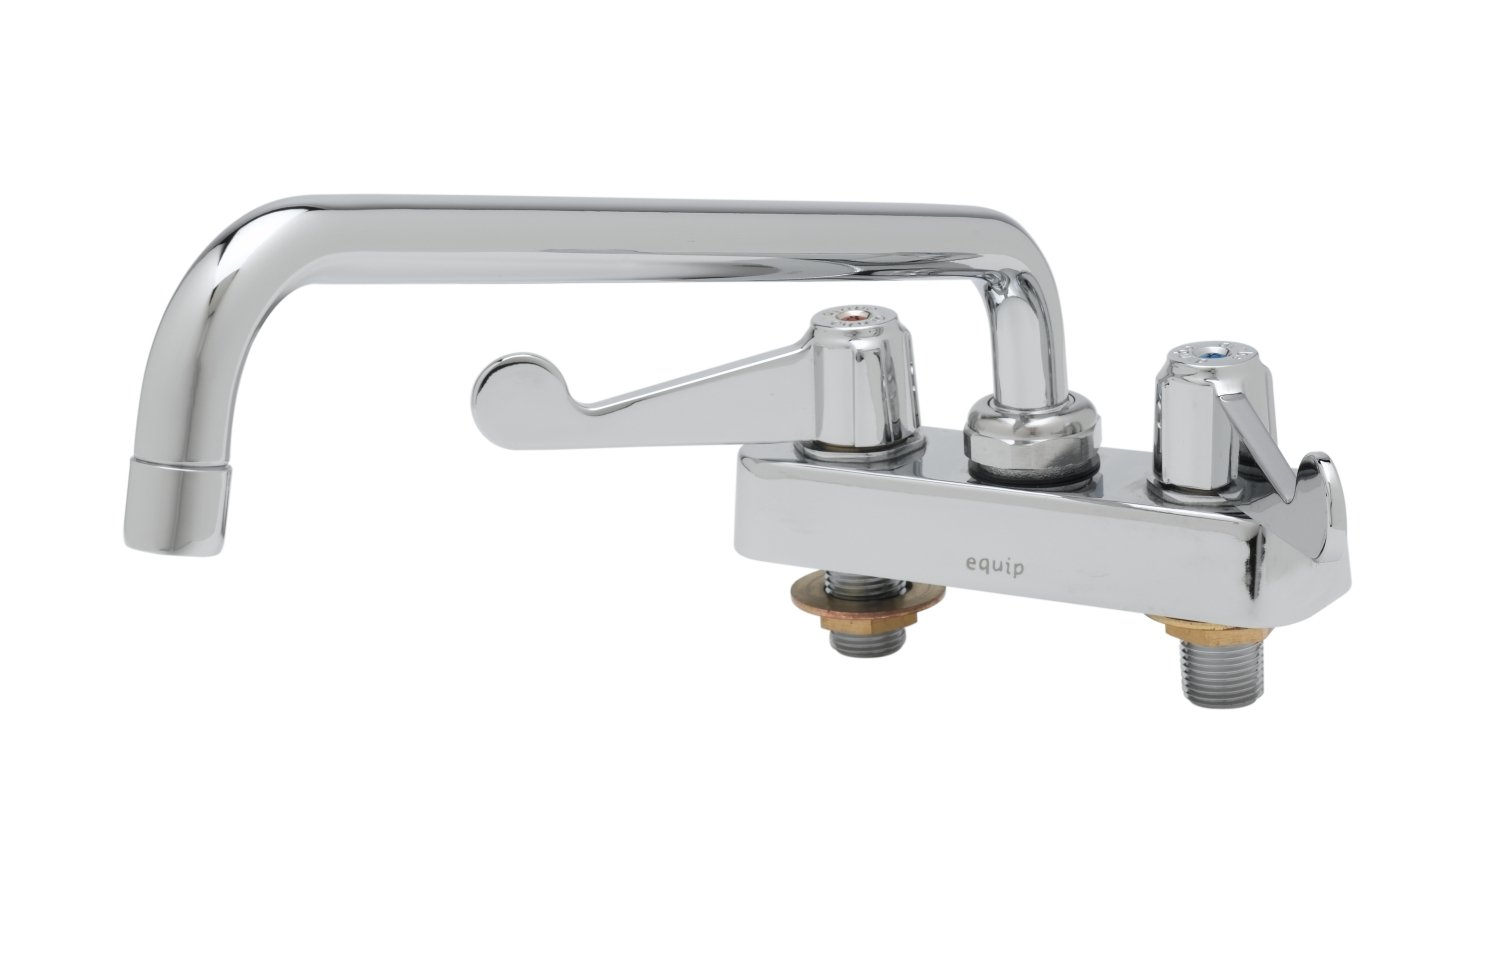 T/&S Brass 5F-4CWX12  Equip 4-Inch C//C Deck Mount Workboard Fct with 12-Inch Swing Nozzle 4-Inch Wrist Action Handles